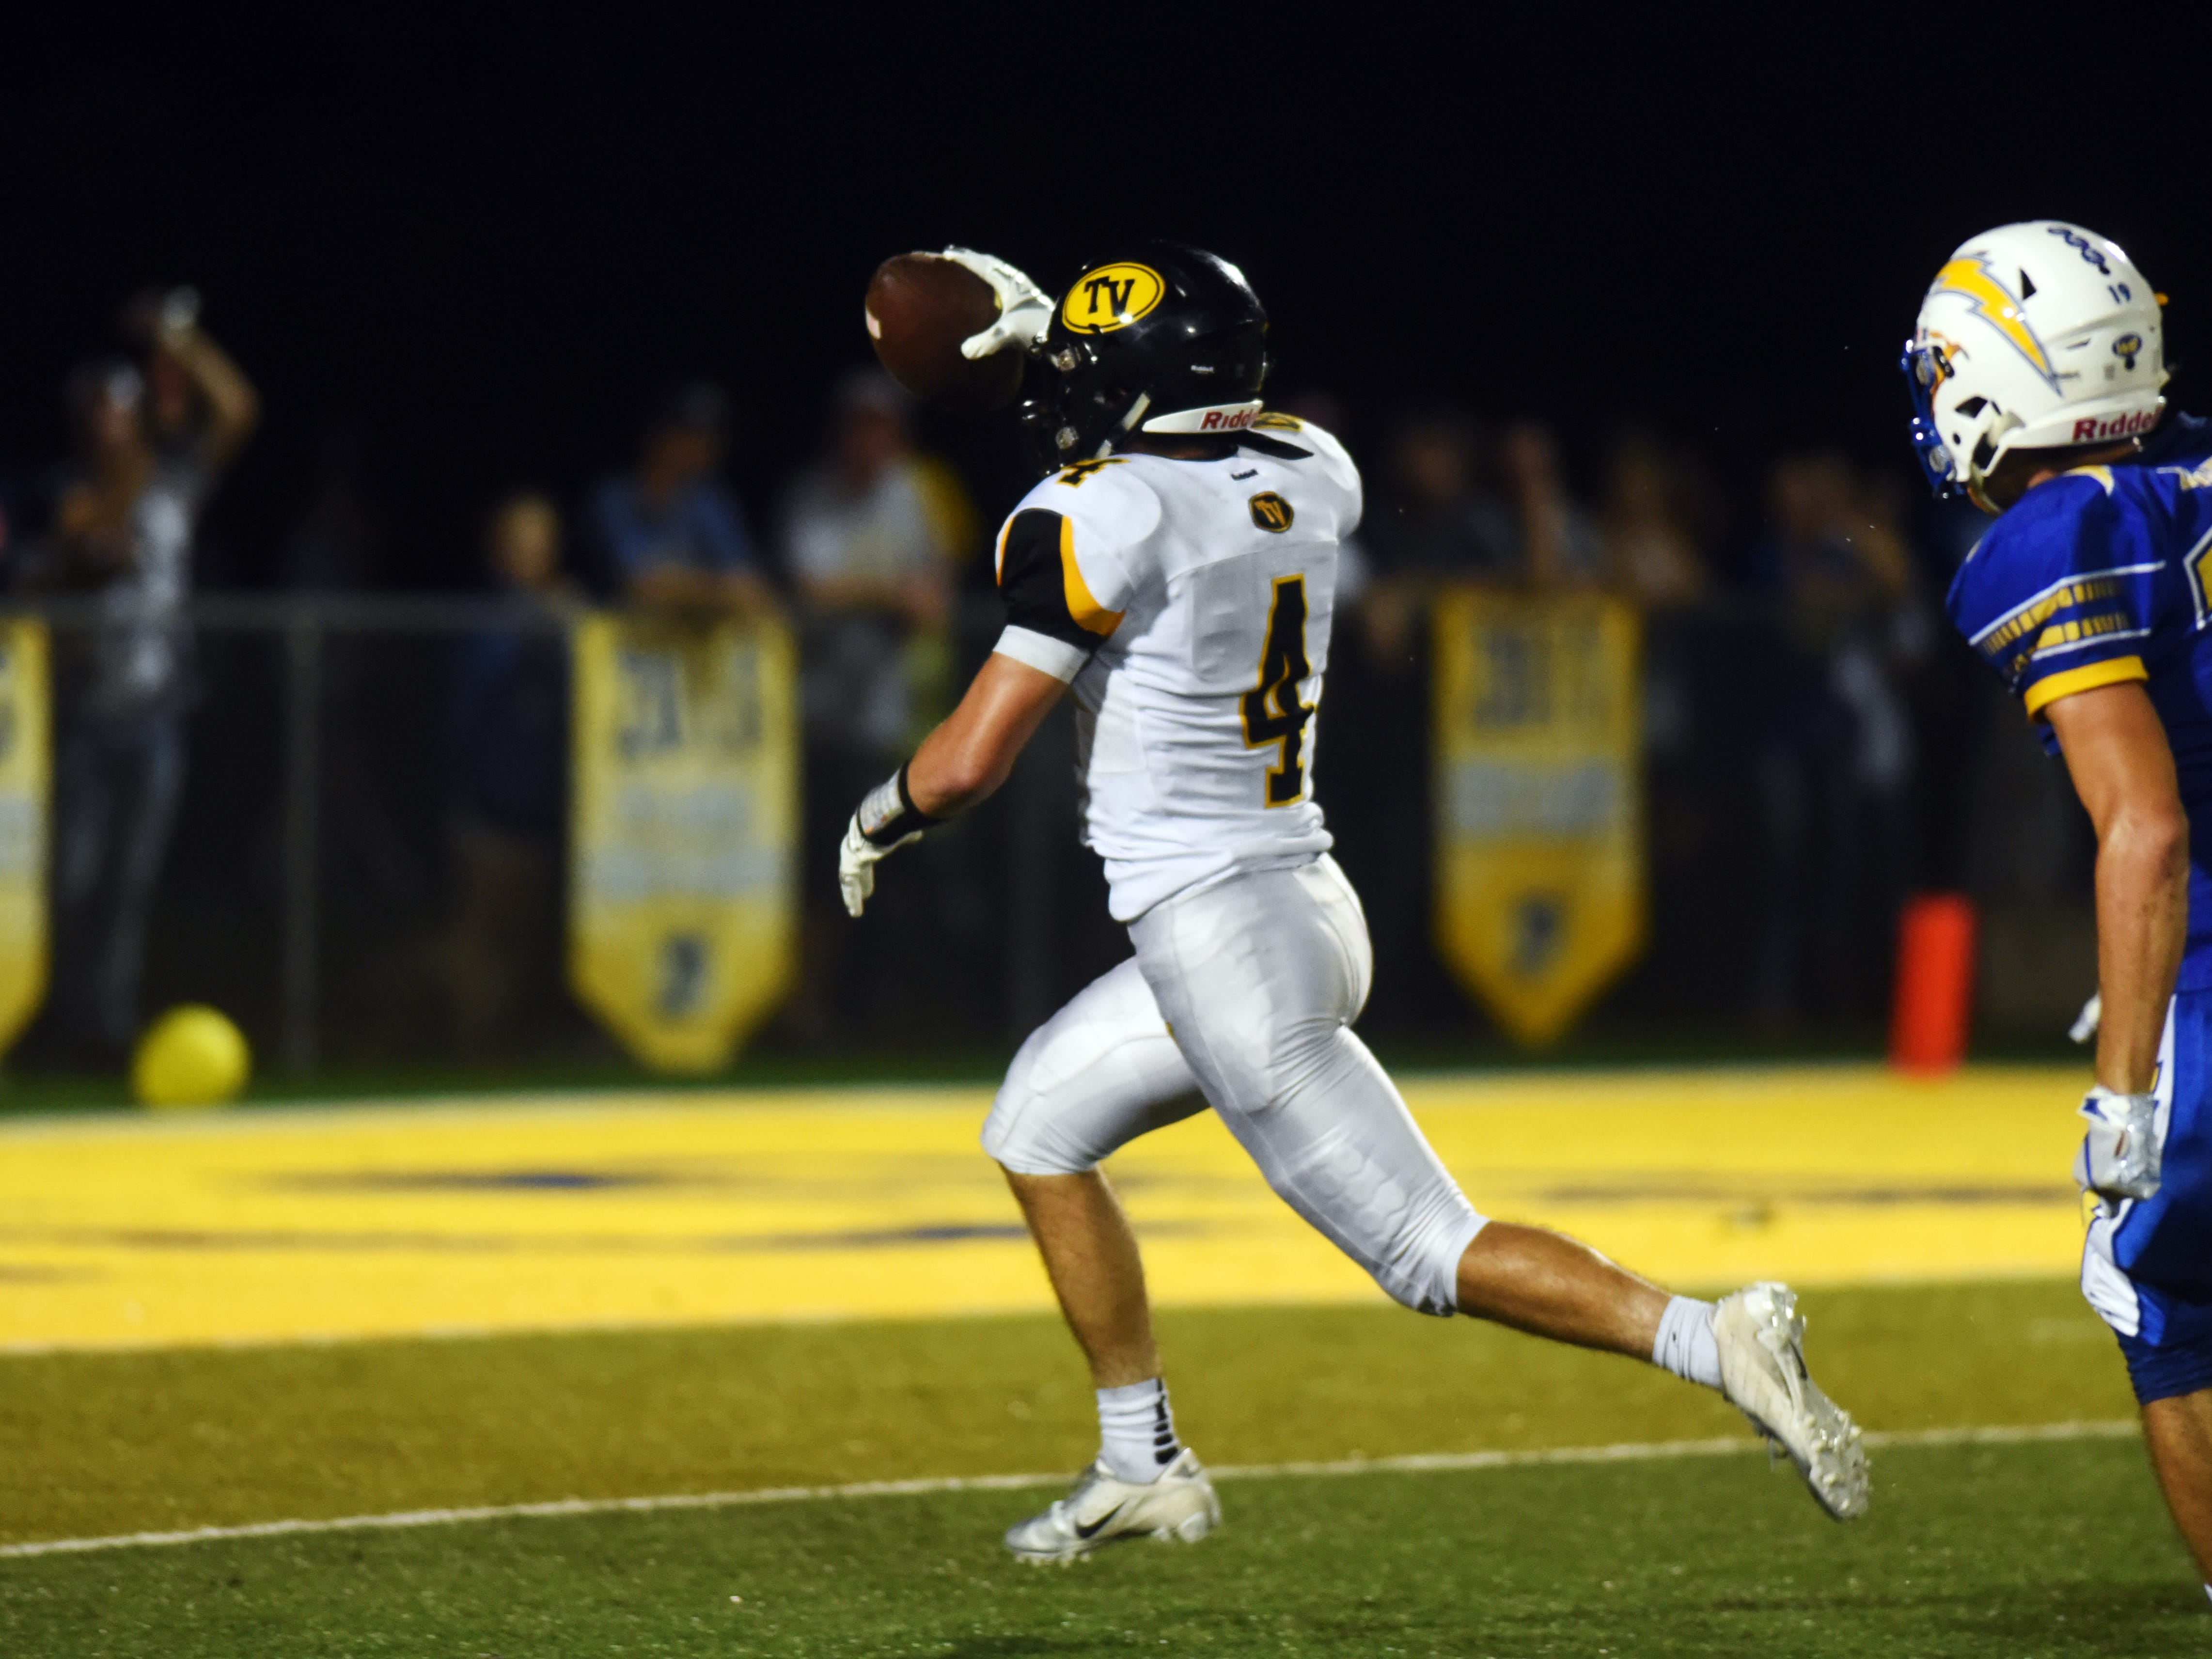 Carson Simpkins, of Tri-Valley, sprints into the end zone with the go-ahead touchdown in the fourth quarter of Tri-Valley's 28-14 comeback win against Philo on Friday night at Sam Hatfield Stadium.